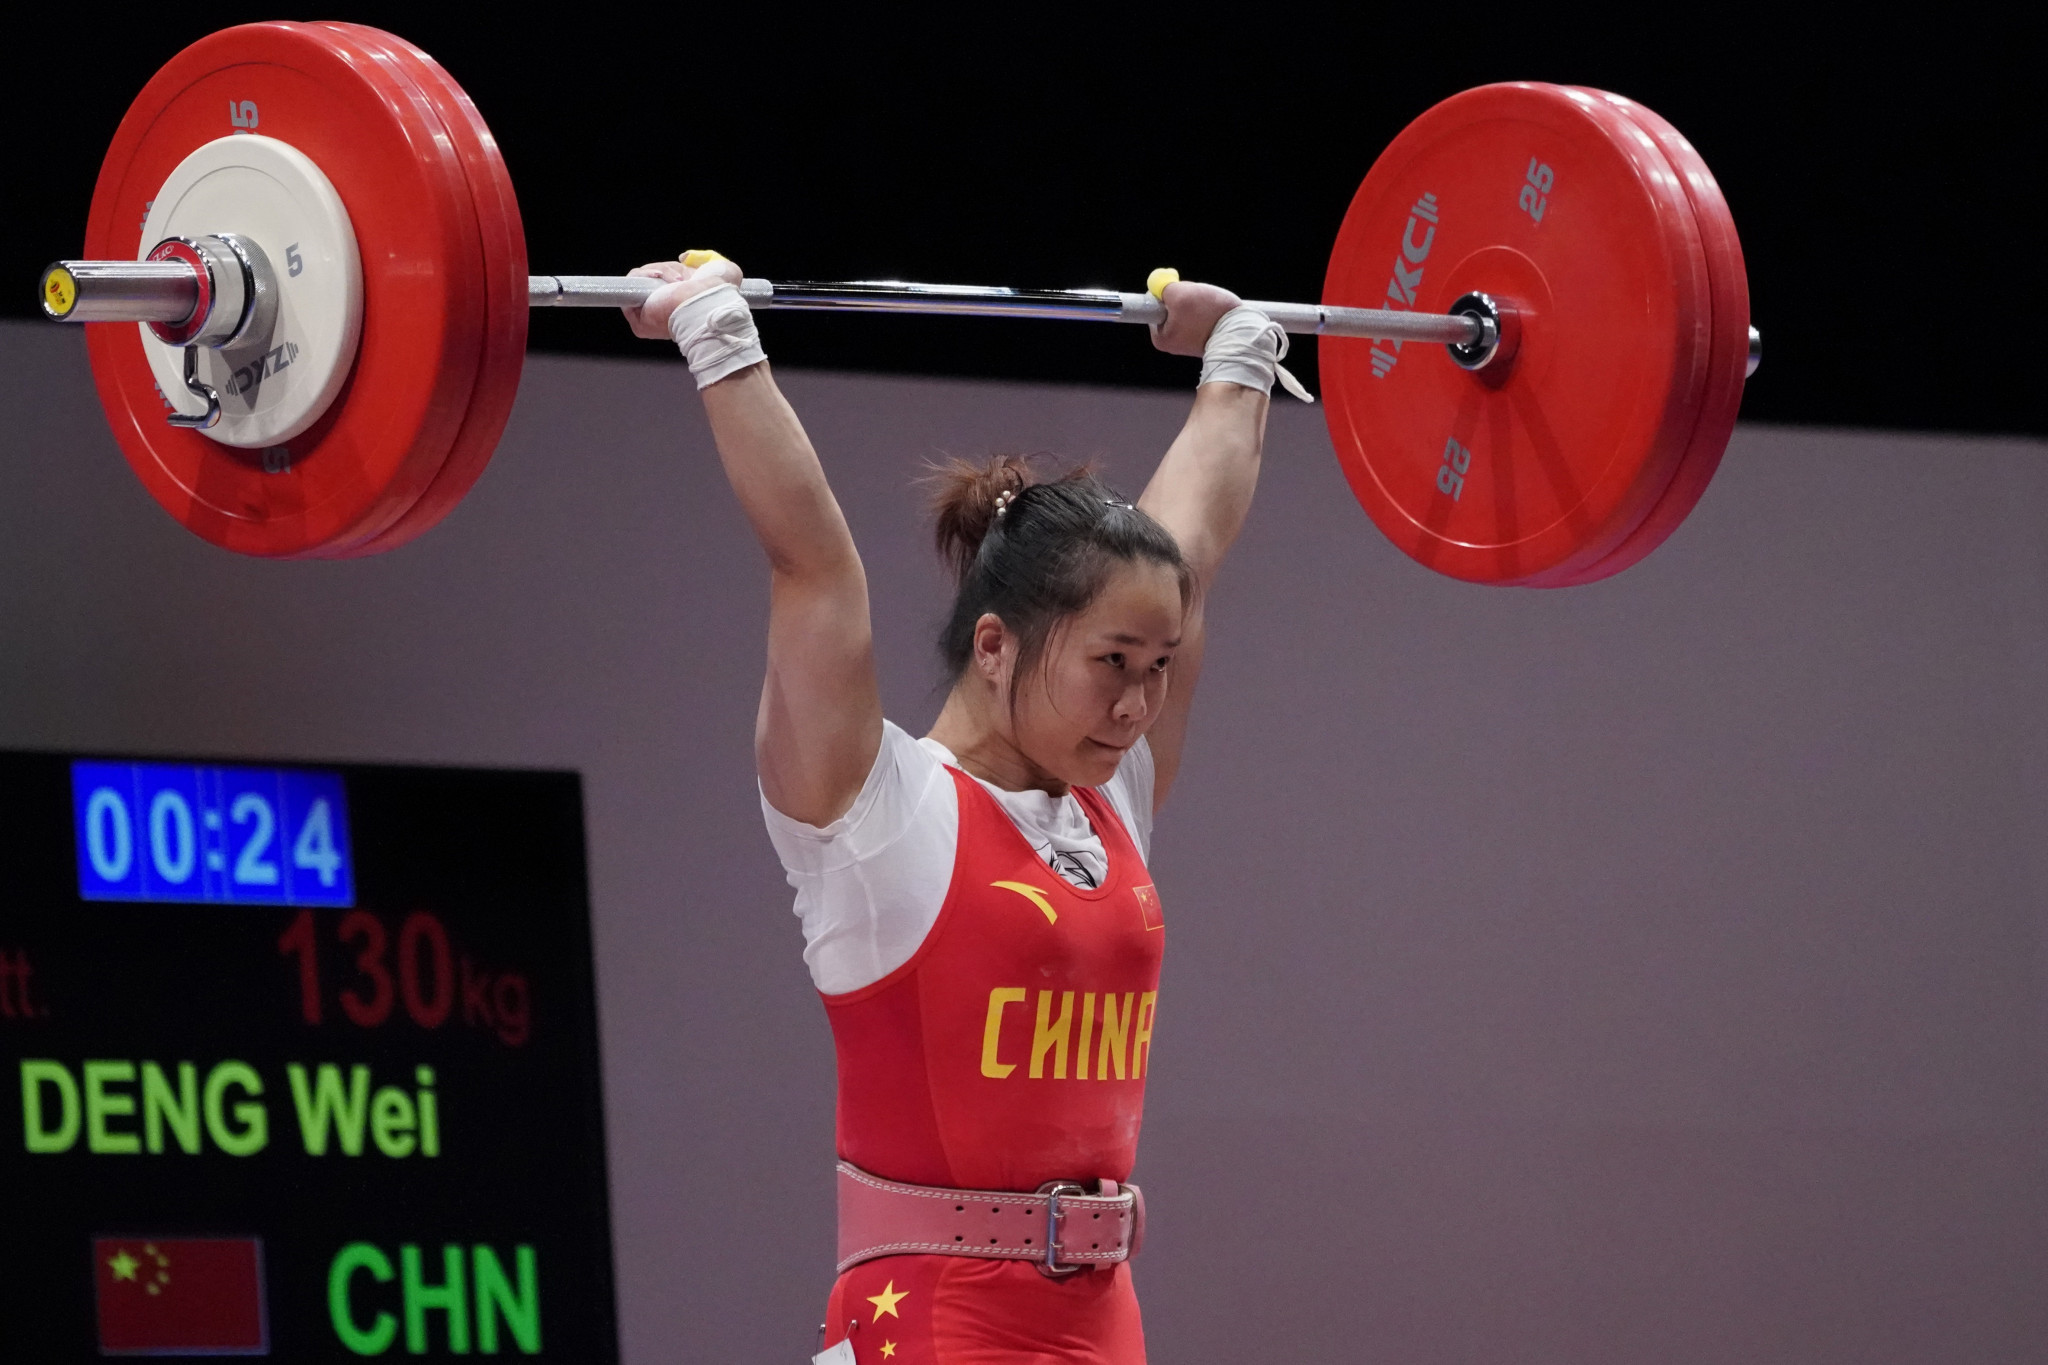 China's Deng Wei competing at the Tokyo 2020 test event ©Getty Images